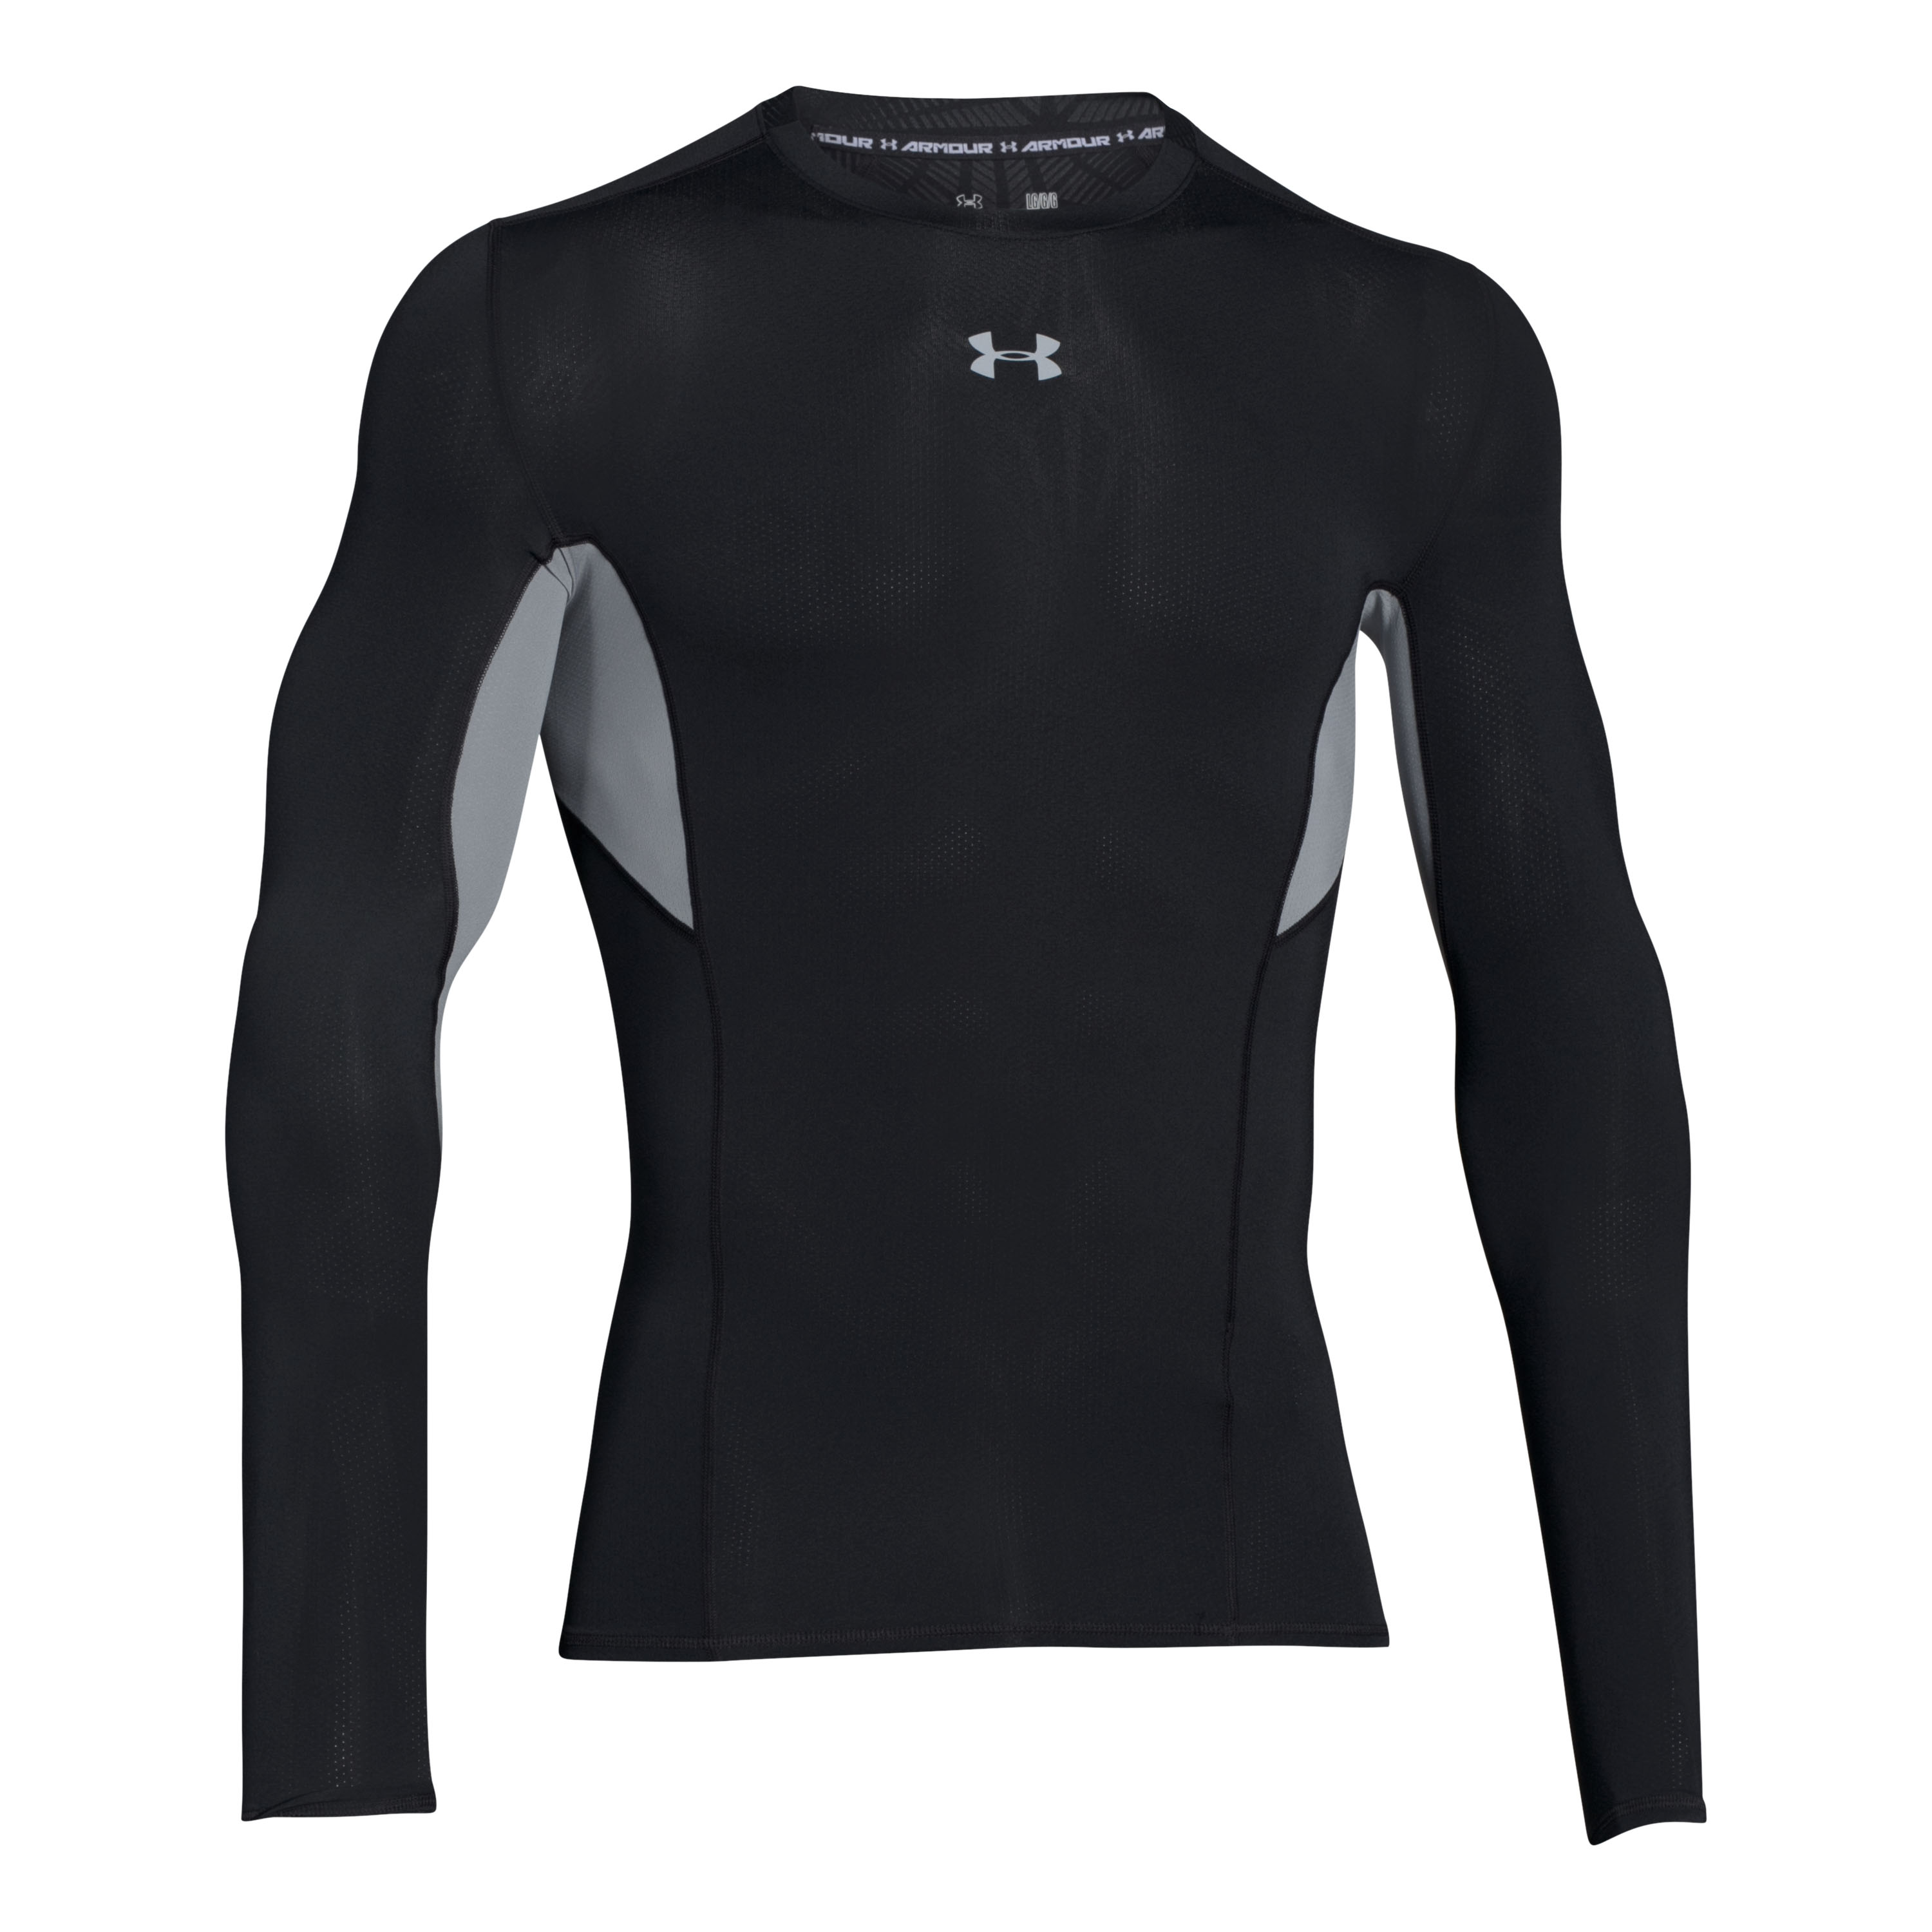 Under Armour Shirt Compressions Longsleeve schwarz-grau